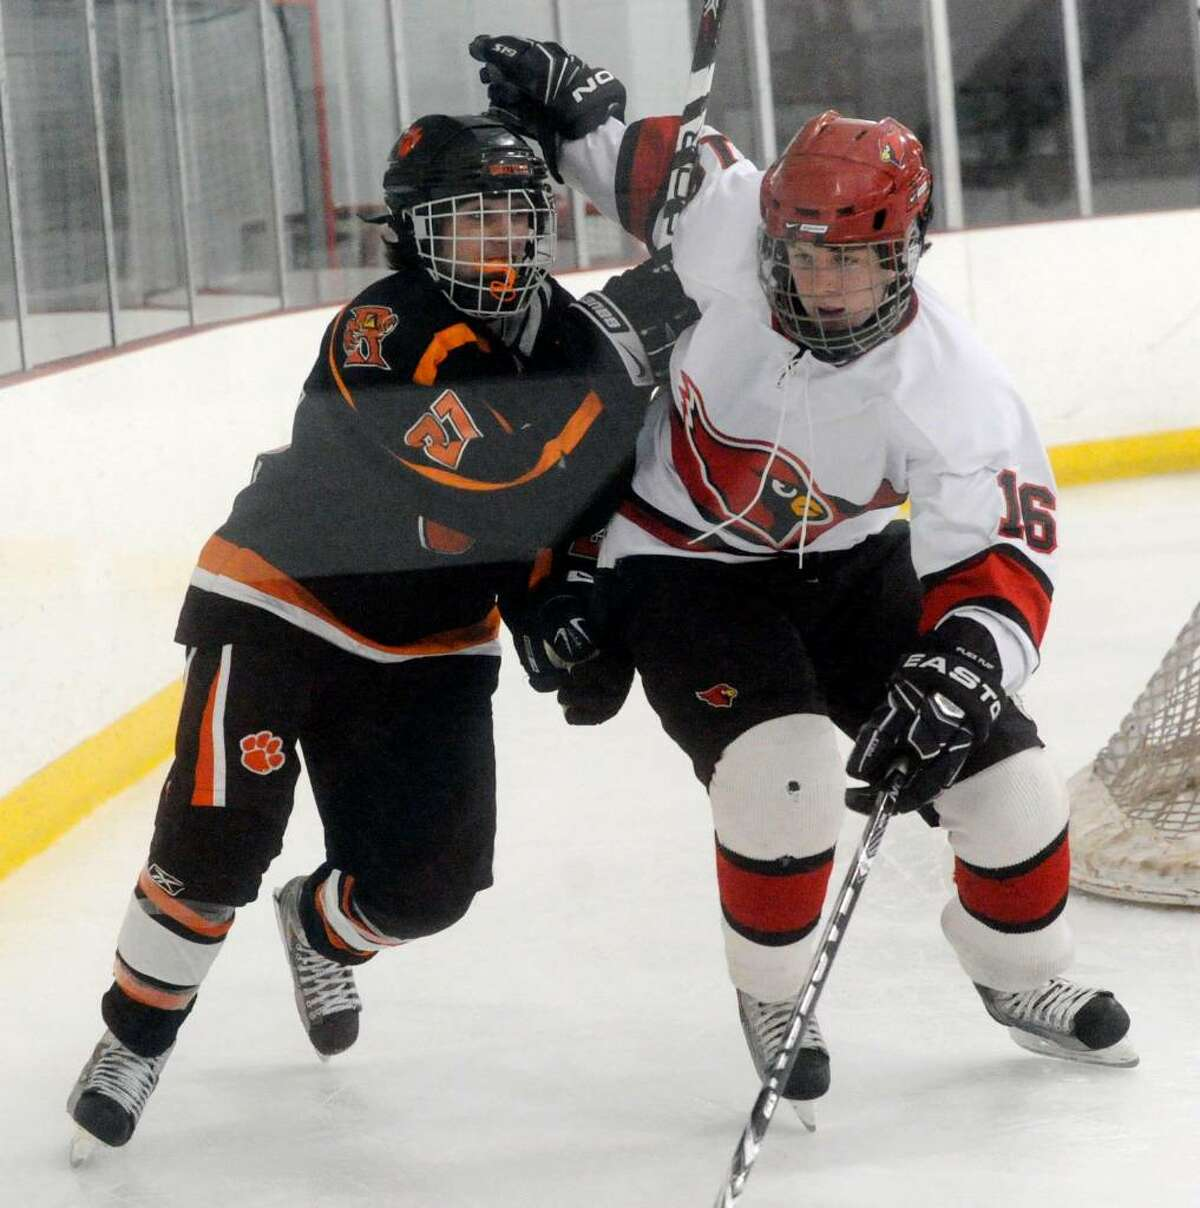 Greenwich's Jack Gilson and Ridgefield's Matthew Hrvatin battle as Greenwich High School hosts Ridgefield High in a boys hockey game during the first round of the Division I Boys Hockey Playoffs.